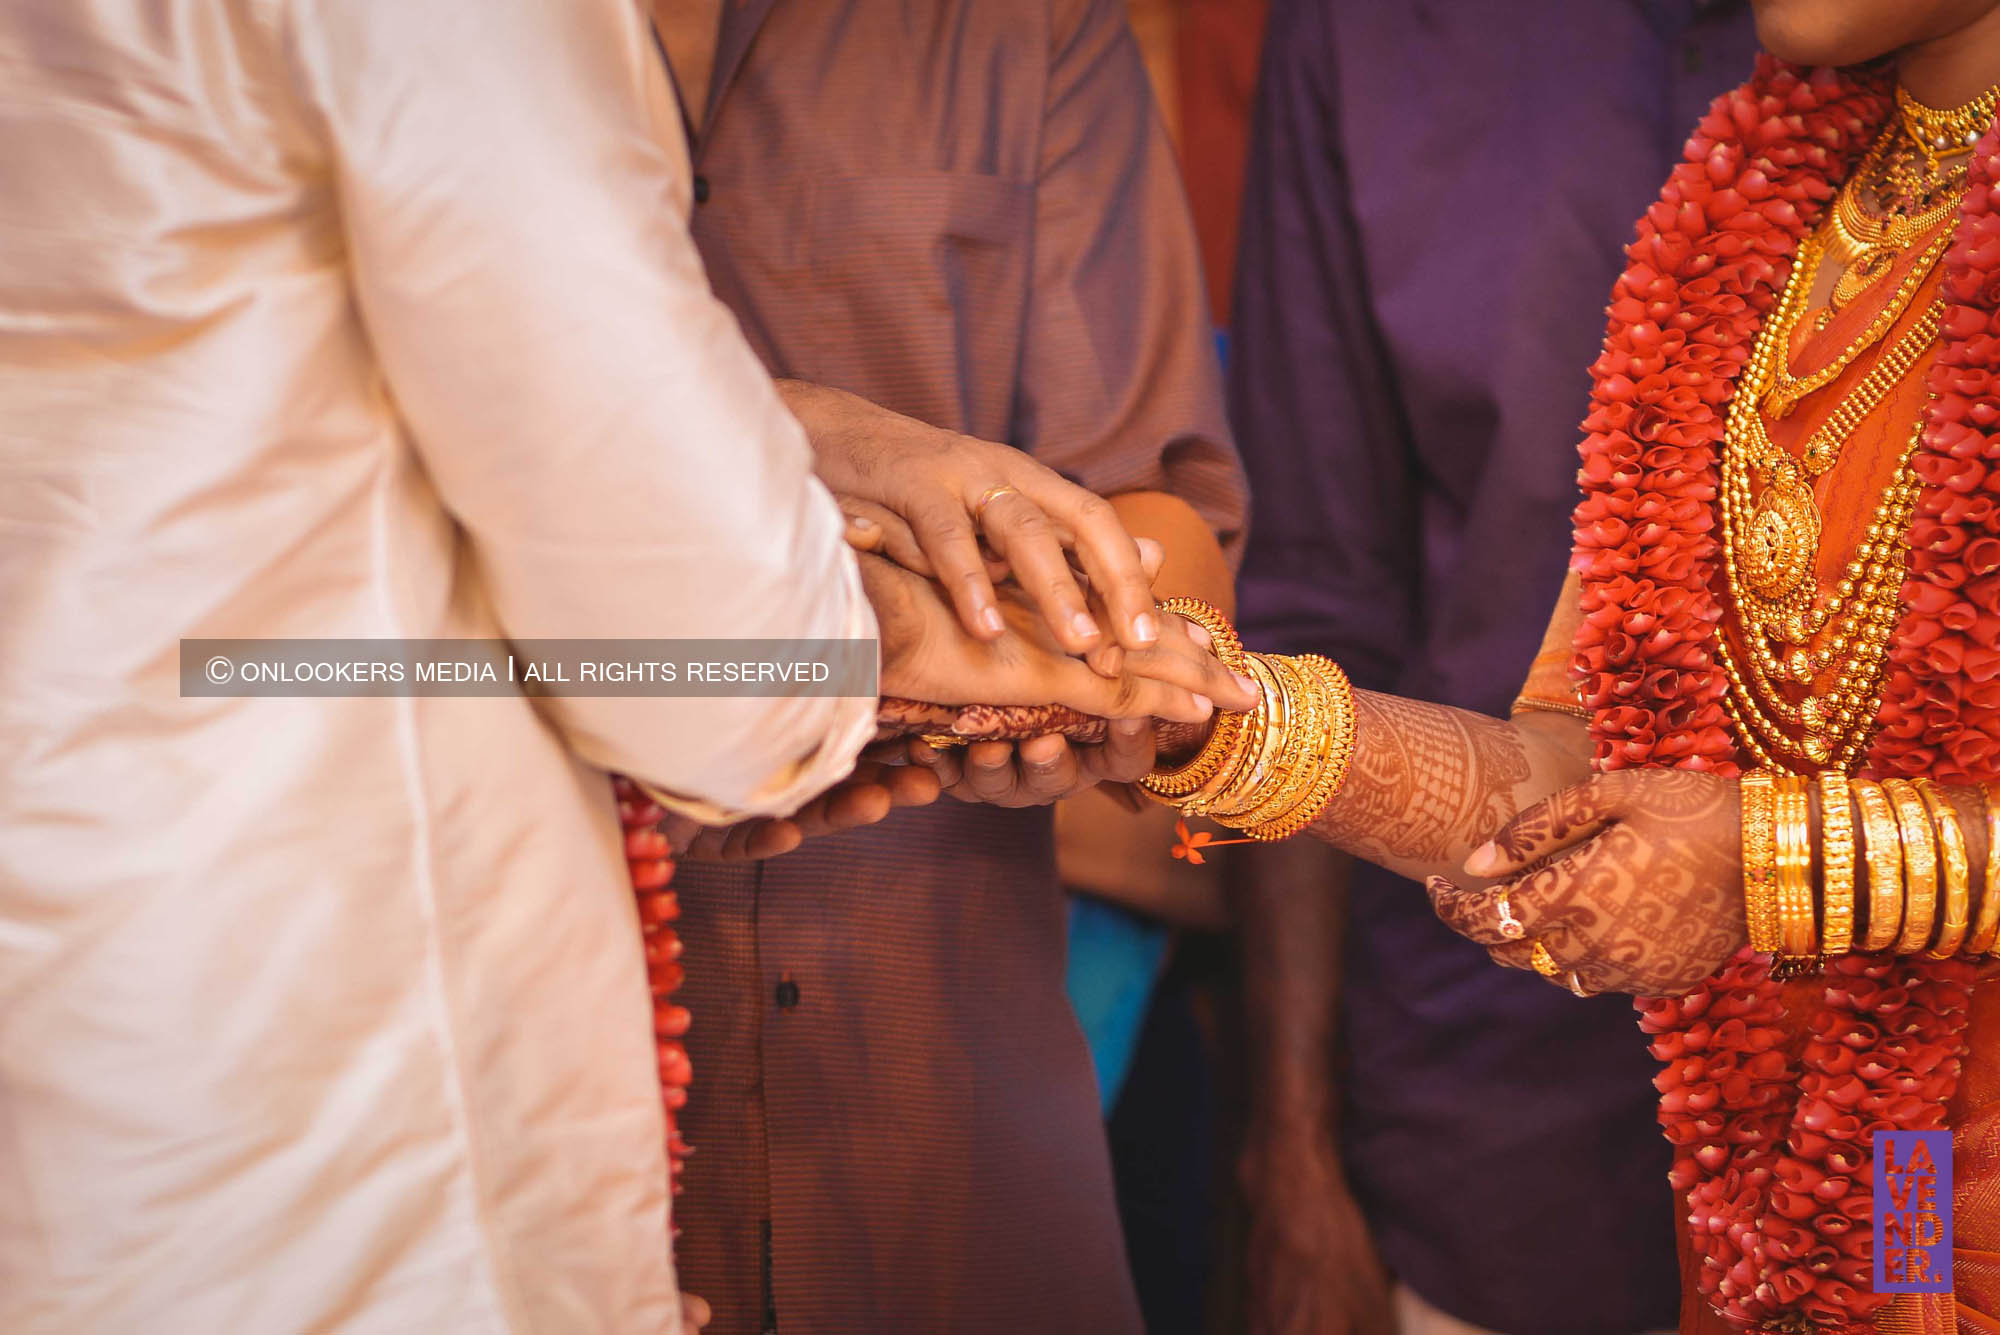 http://onlookersmedia.in/wp-content/uploads/2018/05/sreejith-vijay-wedding-stills-images-61.jpg